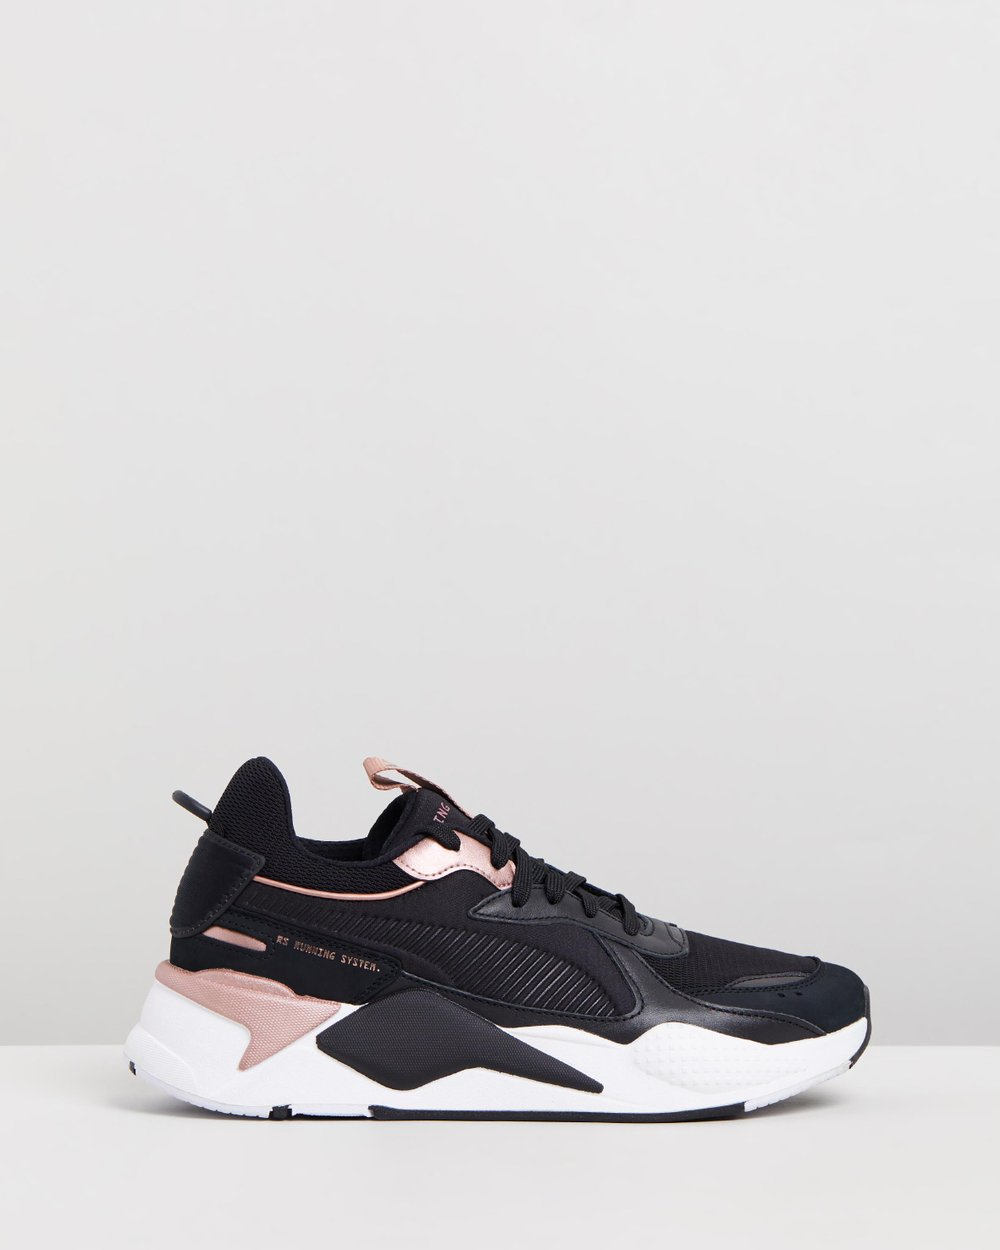 0a810a70247 RS-X Trophy Sneakers by Puma Online